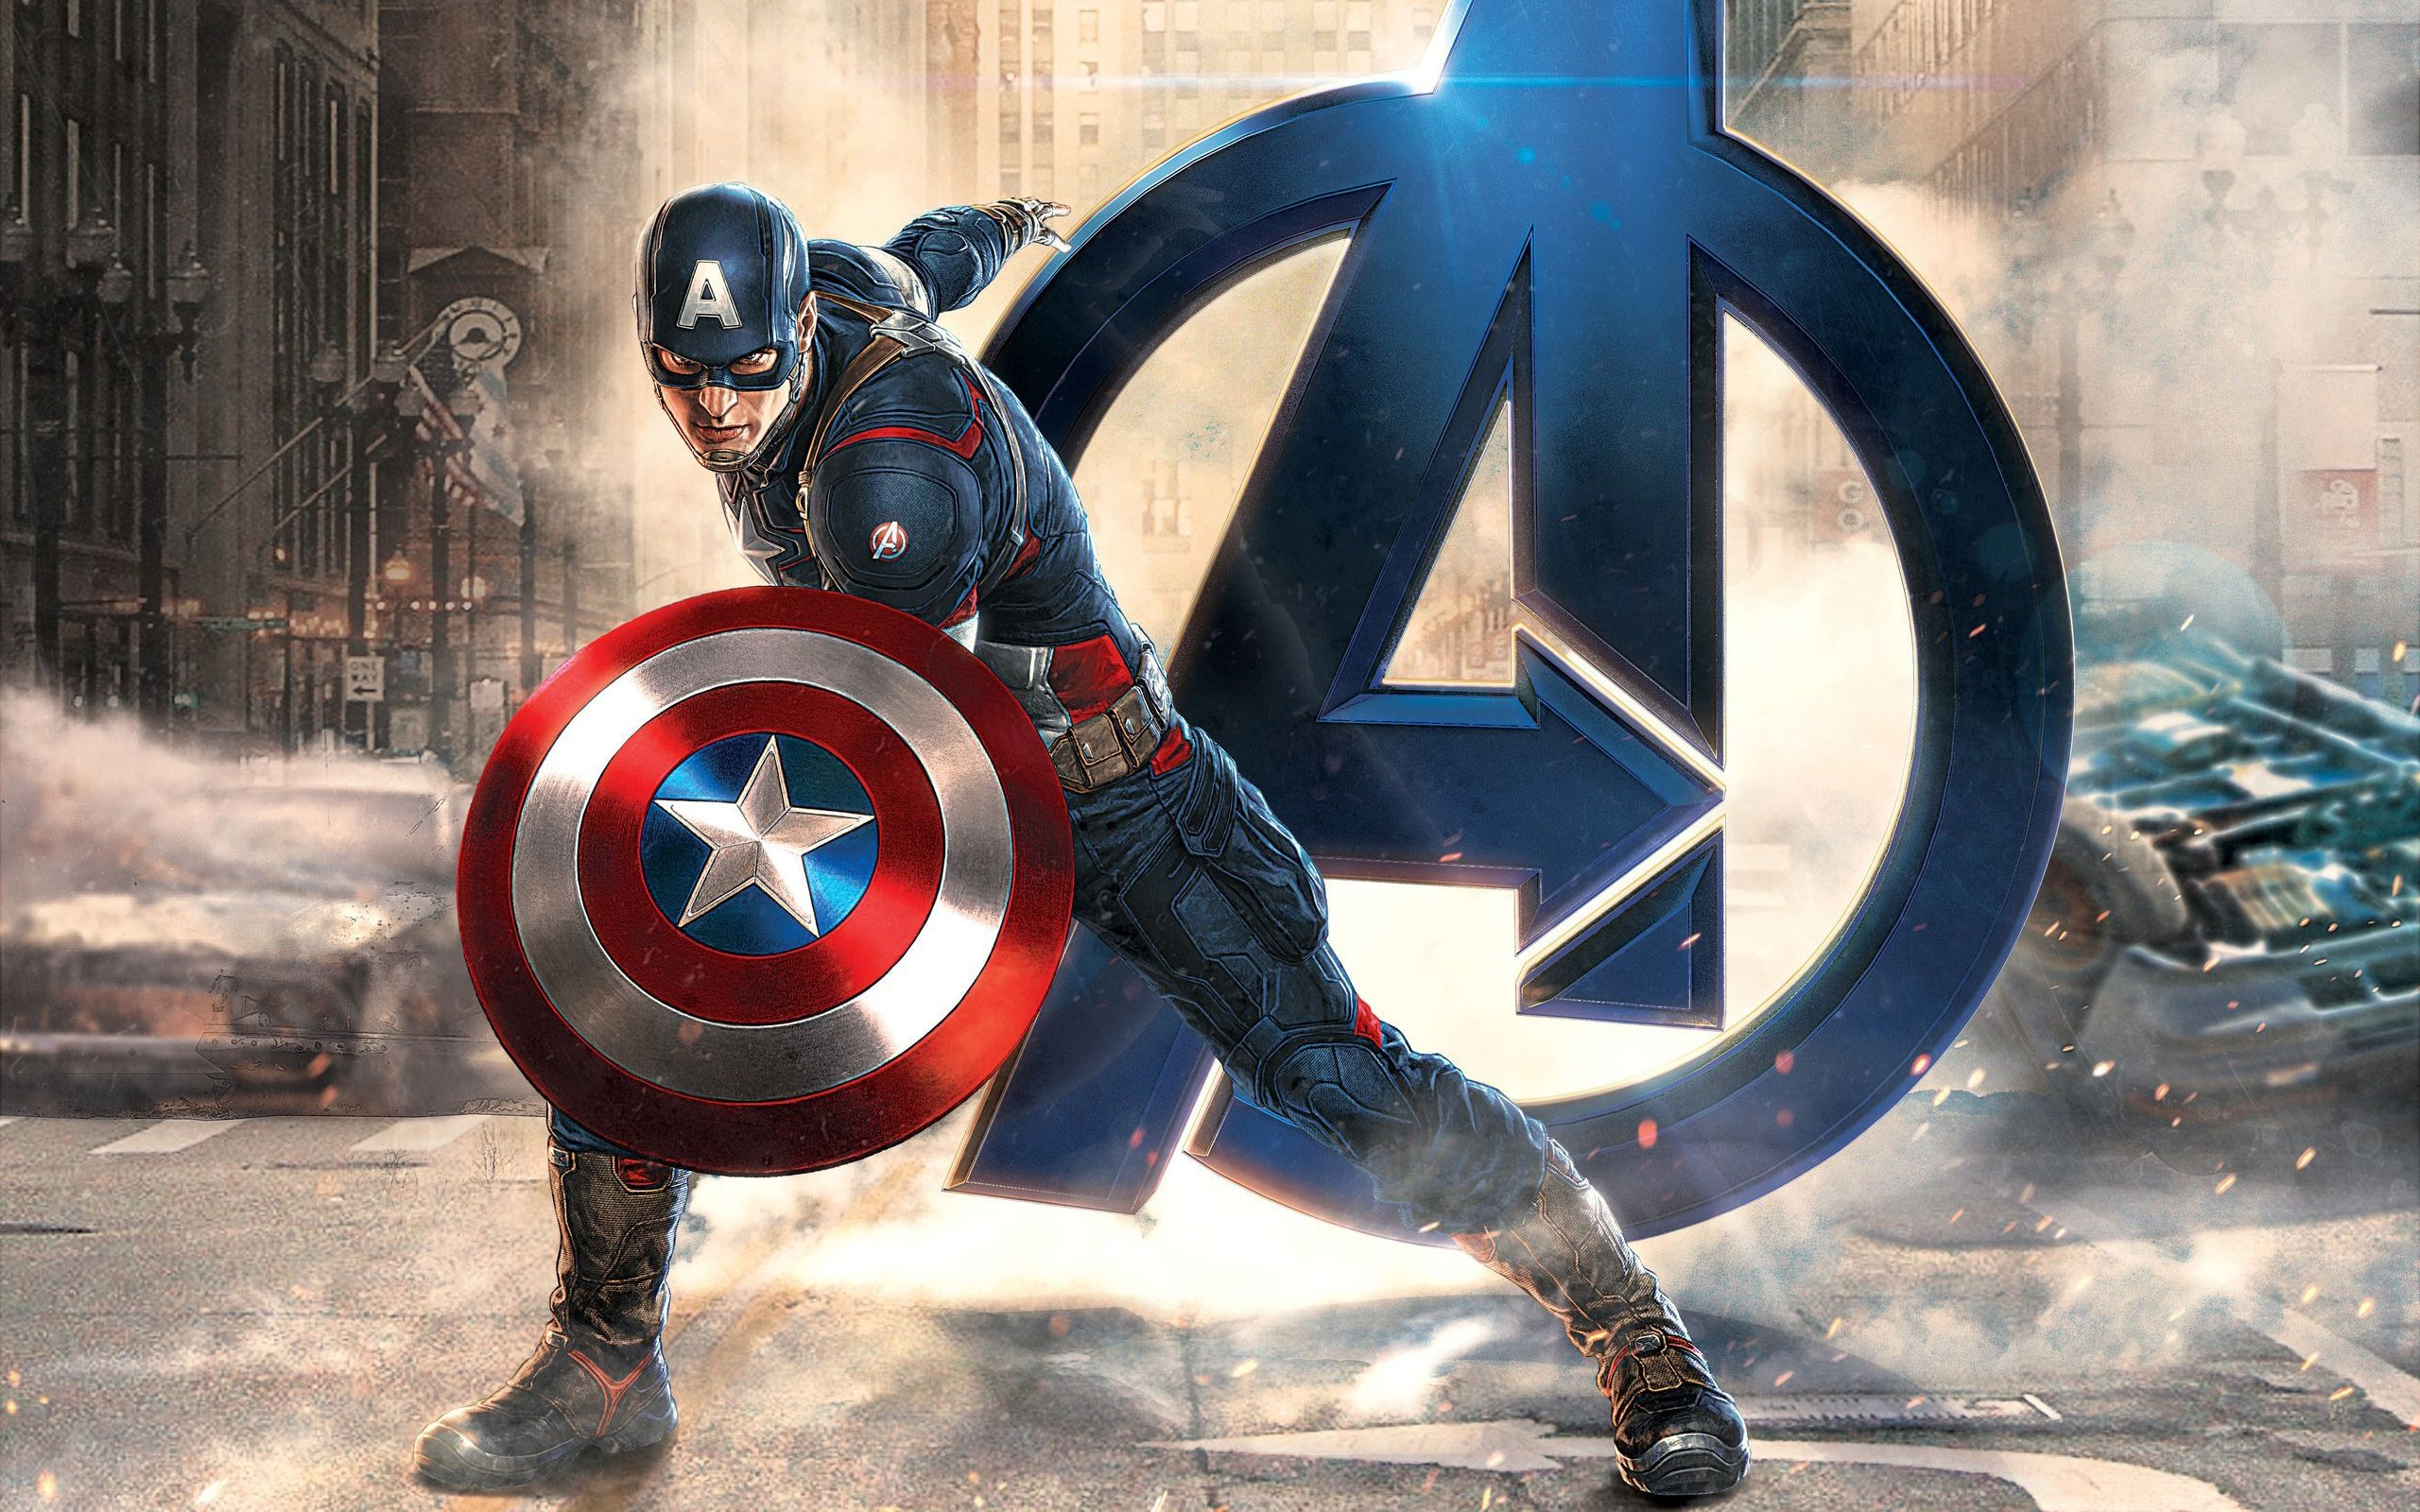 Captain America Wallpapers - Top Free Captain America Backgrounds